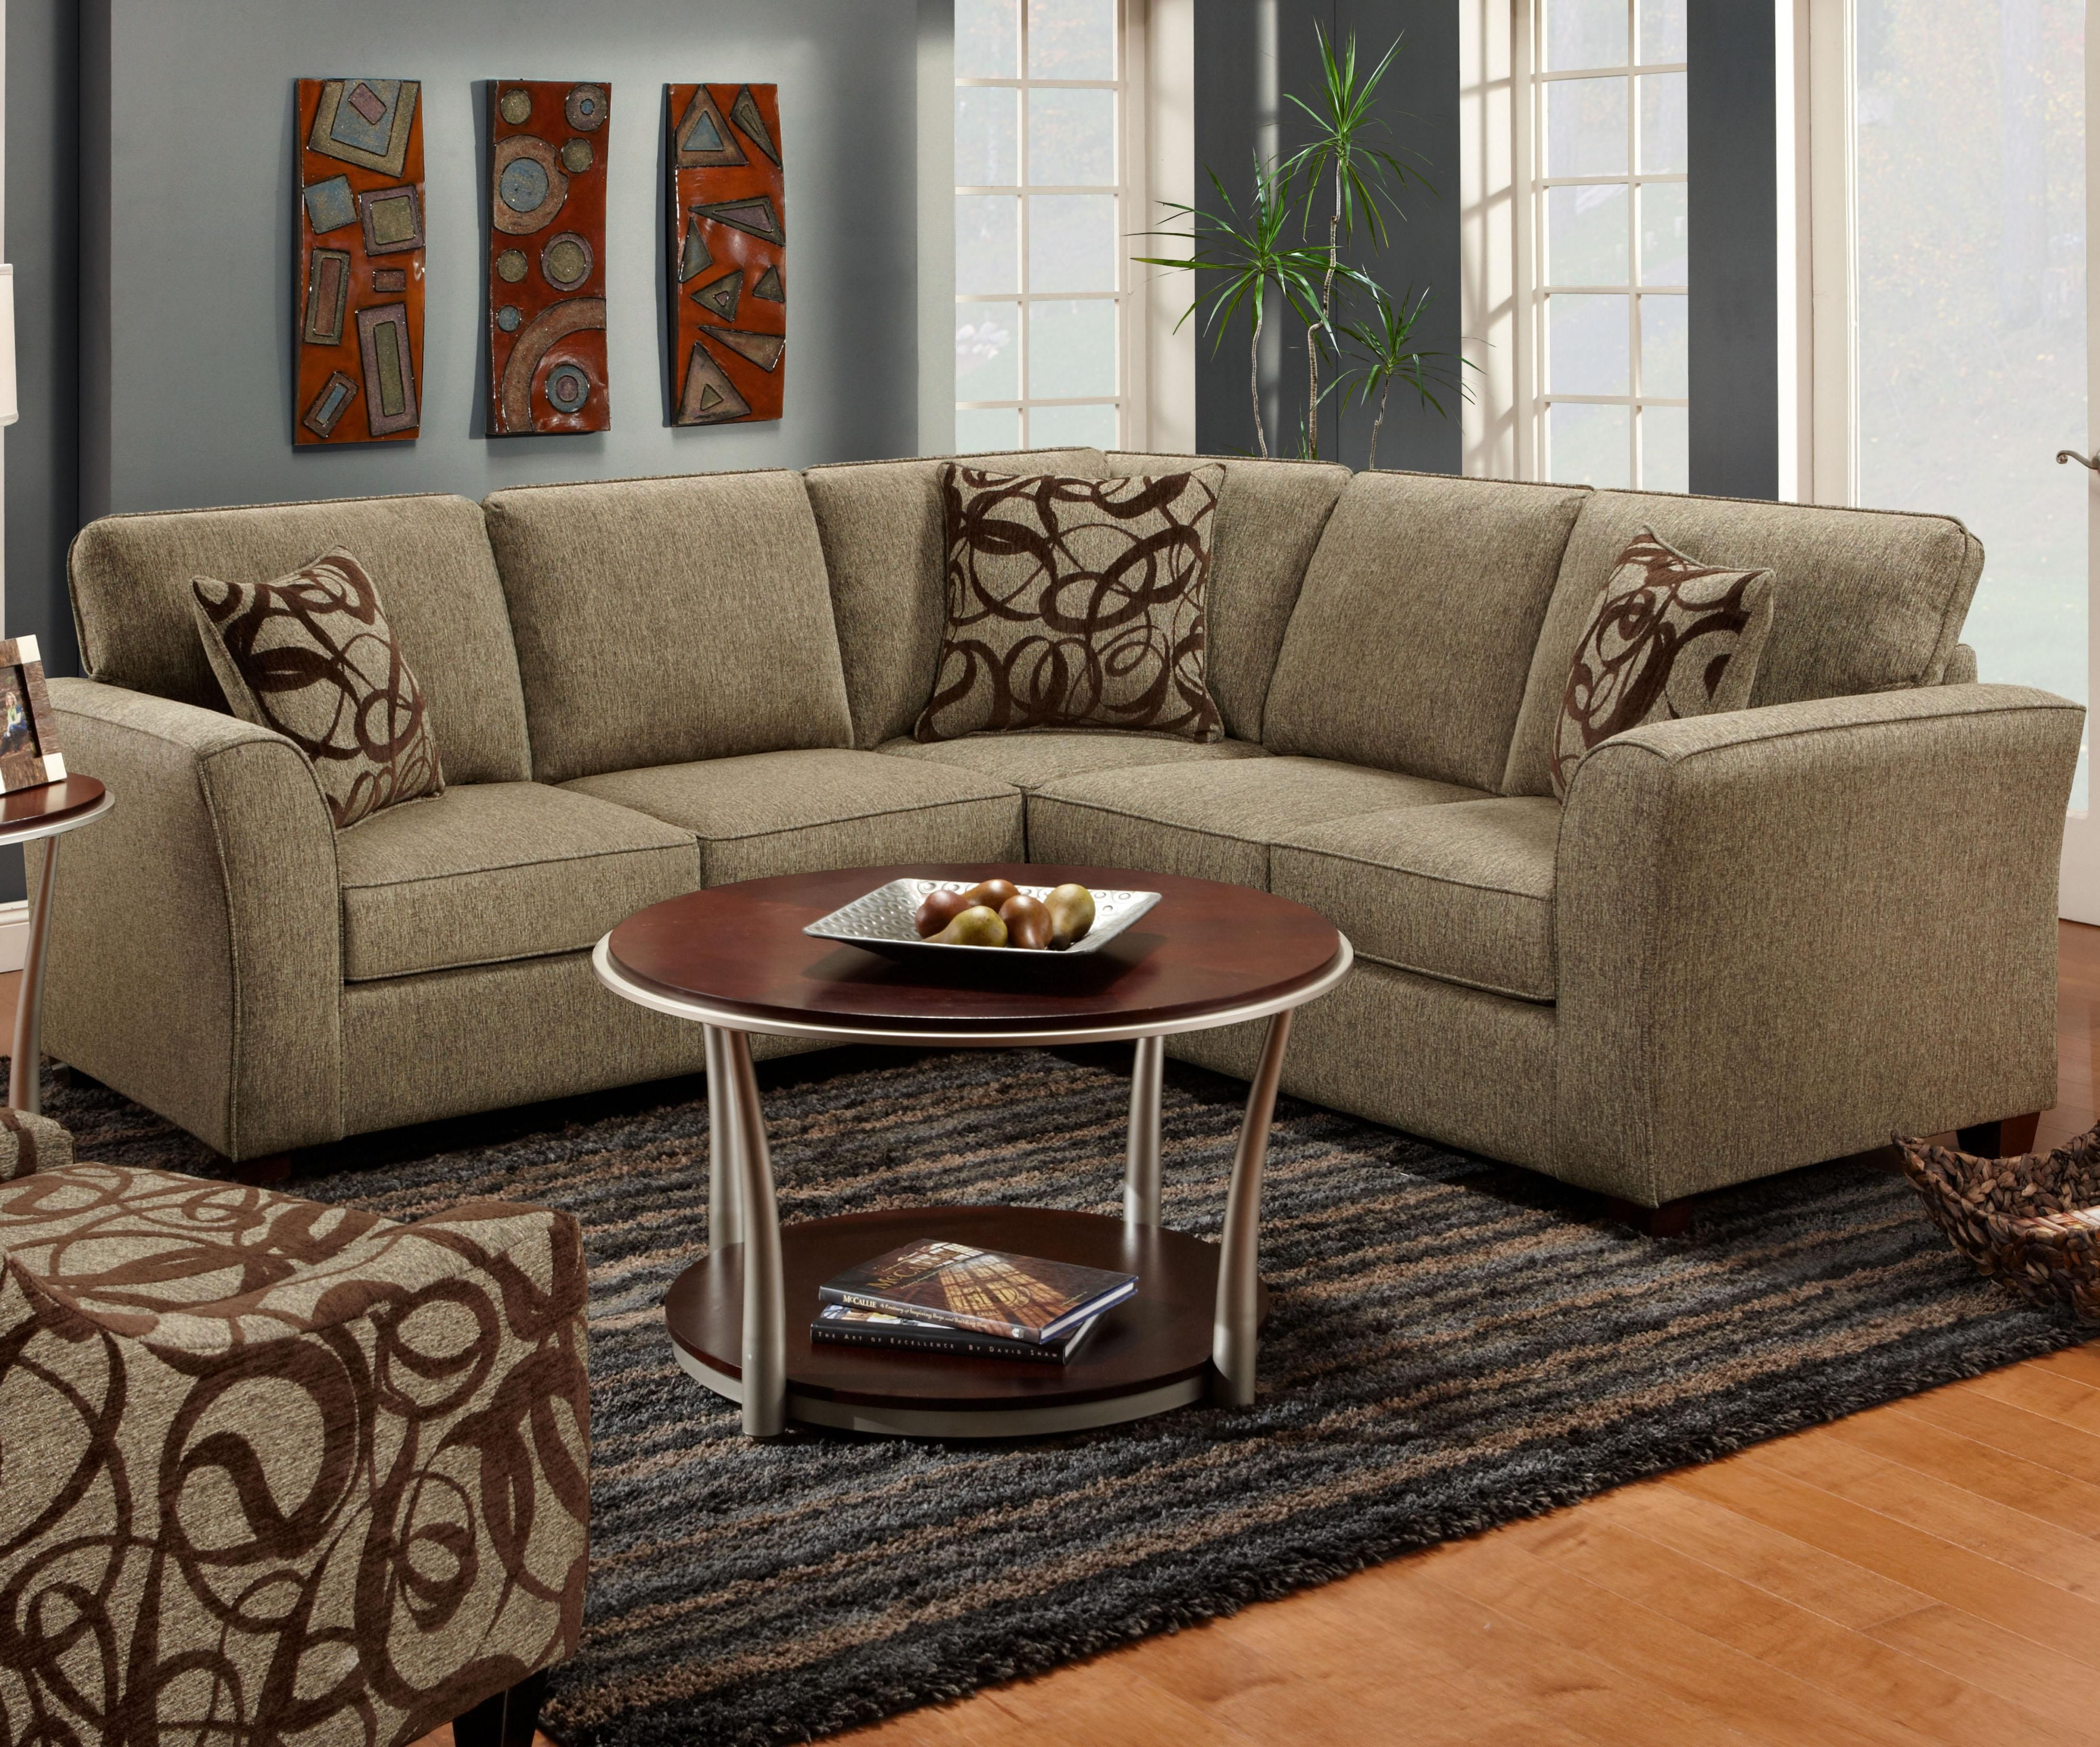 Marlo Furniture Living Room 1295 1296 2 Piece Sectional Sofa By Fusion Furniture For The